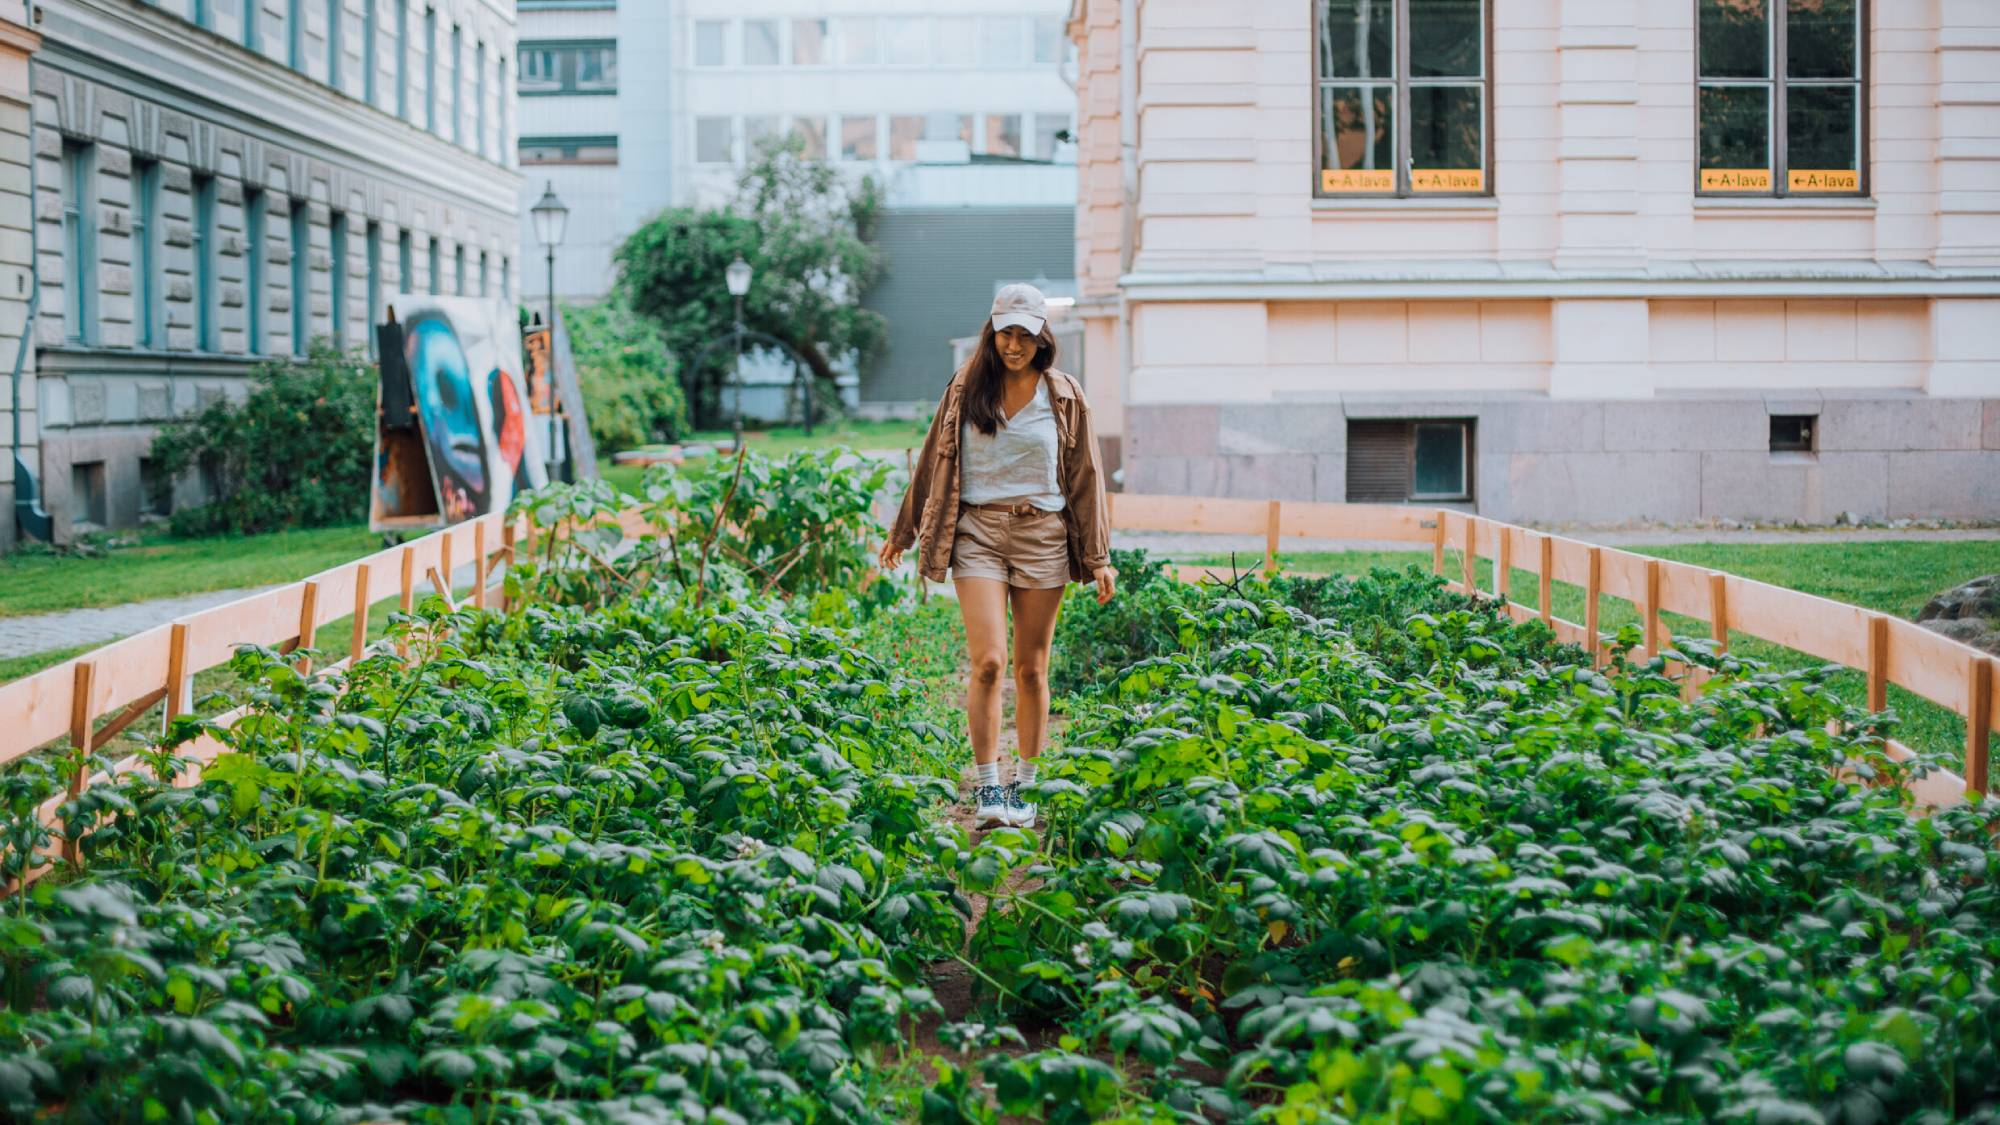 A woman standing in the middle of greens in an urban garden.